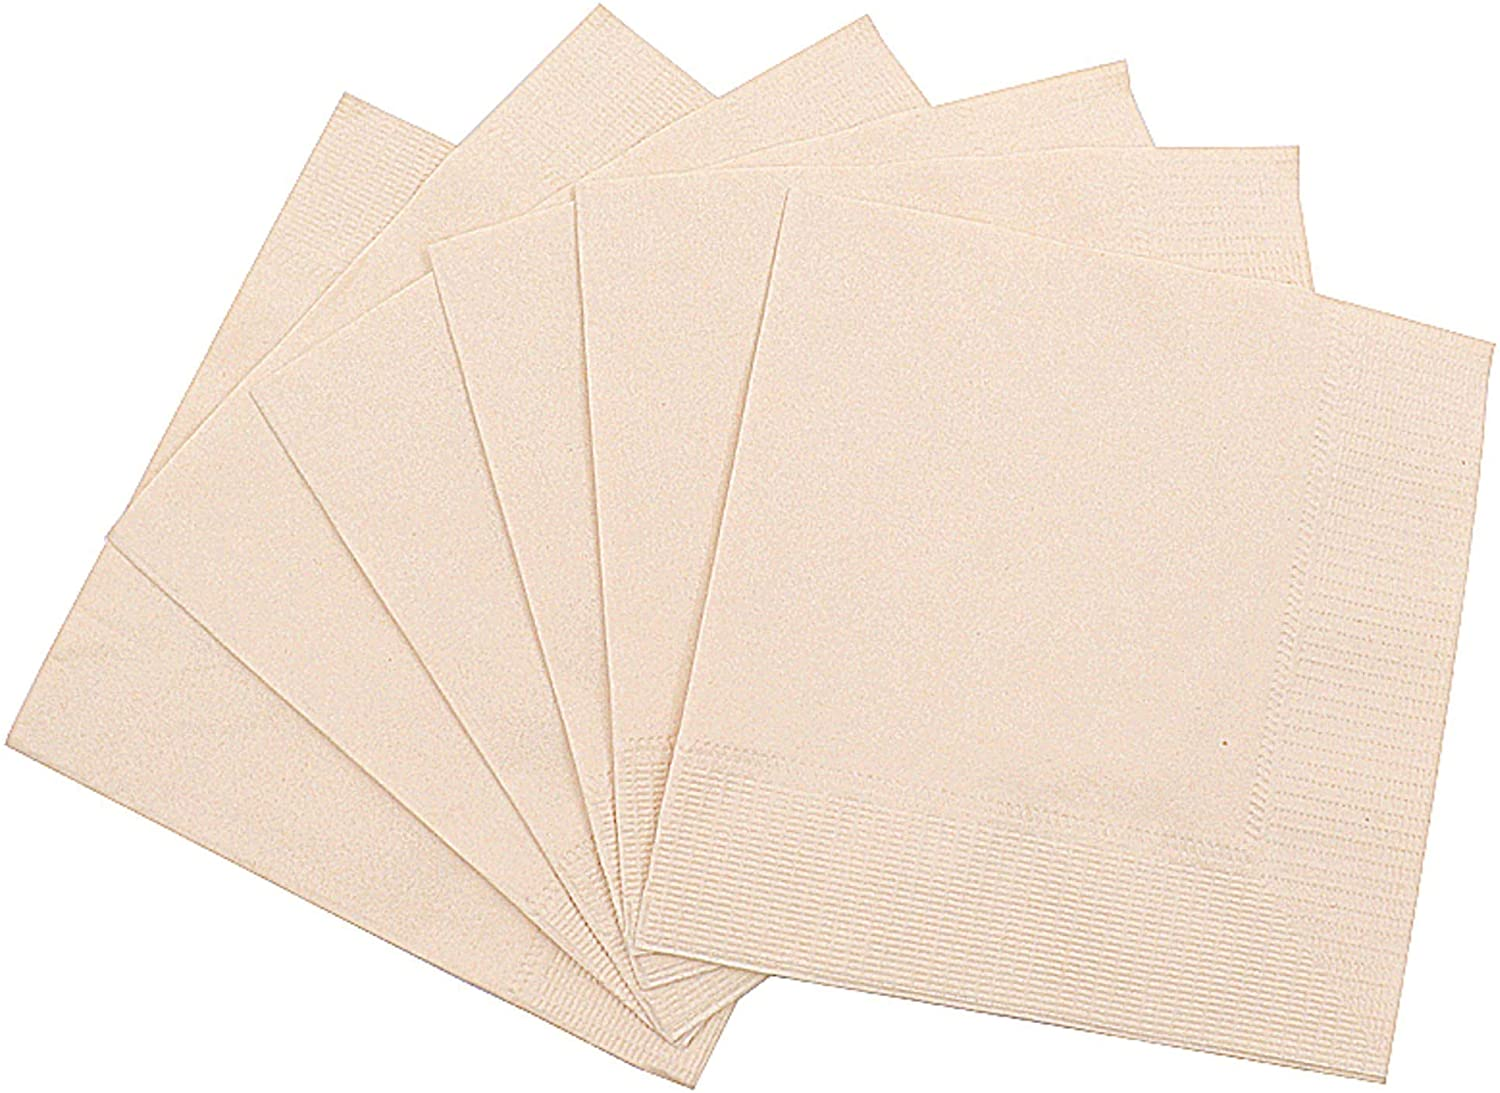 100% Compostable and Eco-friendly Bamboo Dinner Napkins Pack of 100 Perfect for Everyday Dinning, Beverages or Cocktail Disposable